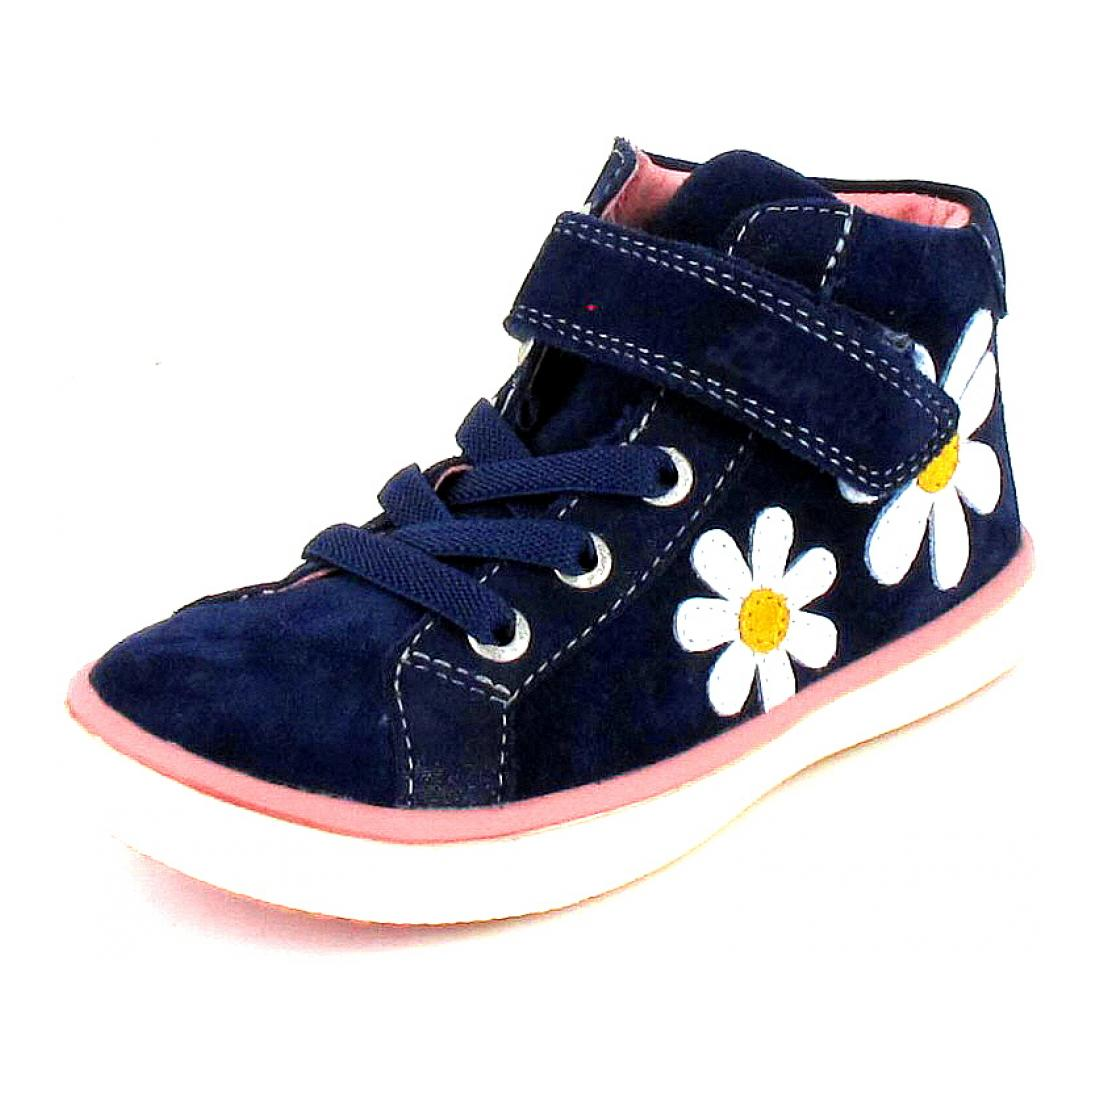 Lurchi Sneaker high Sibbi